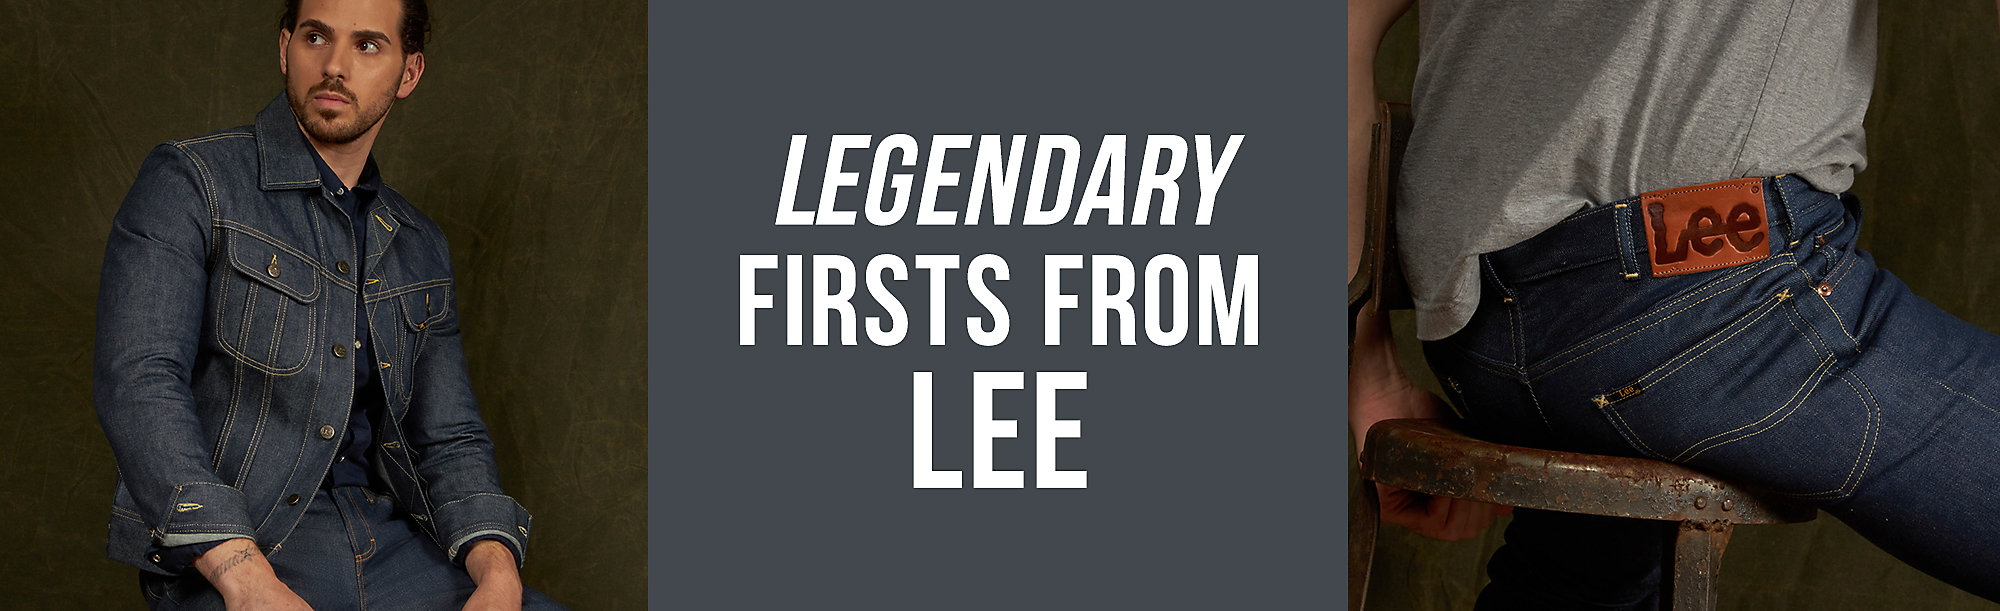 LEE LEGENDARY FASHION FIRSTS